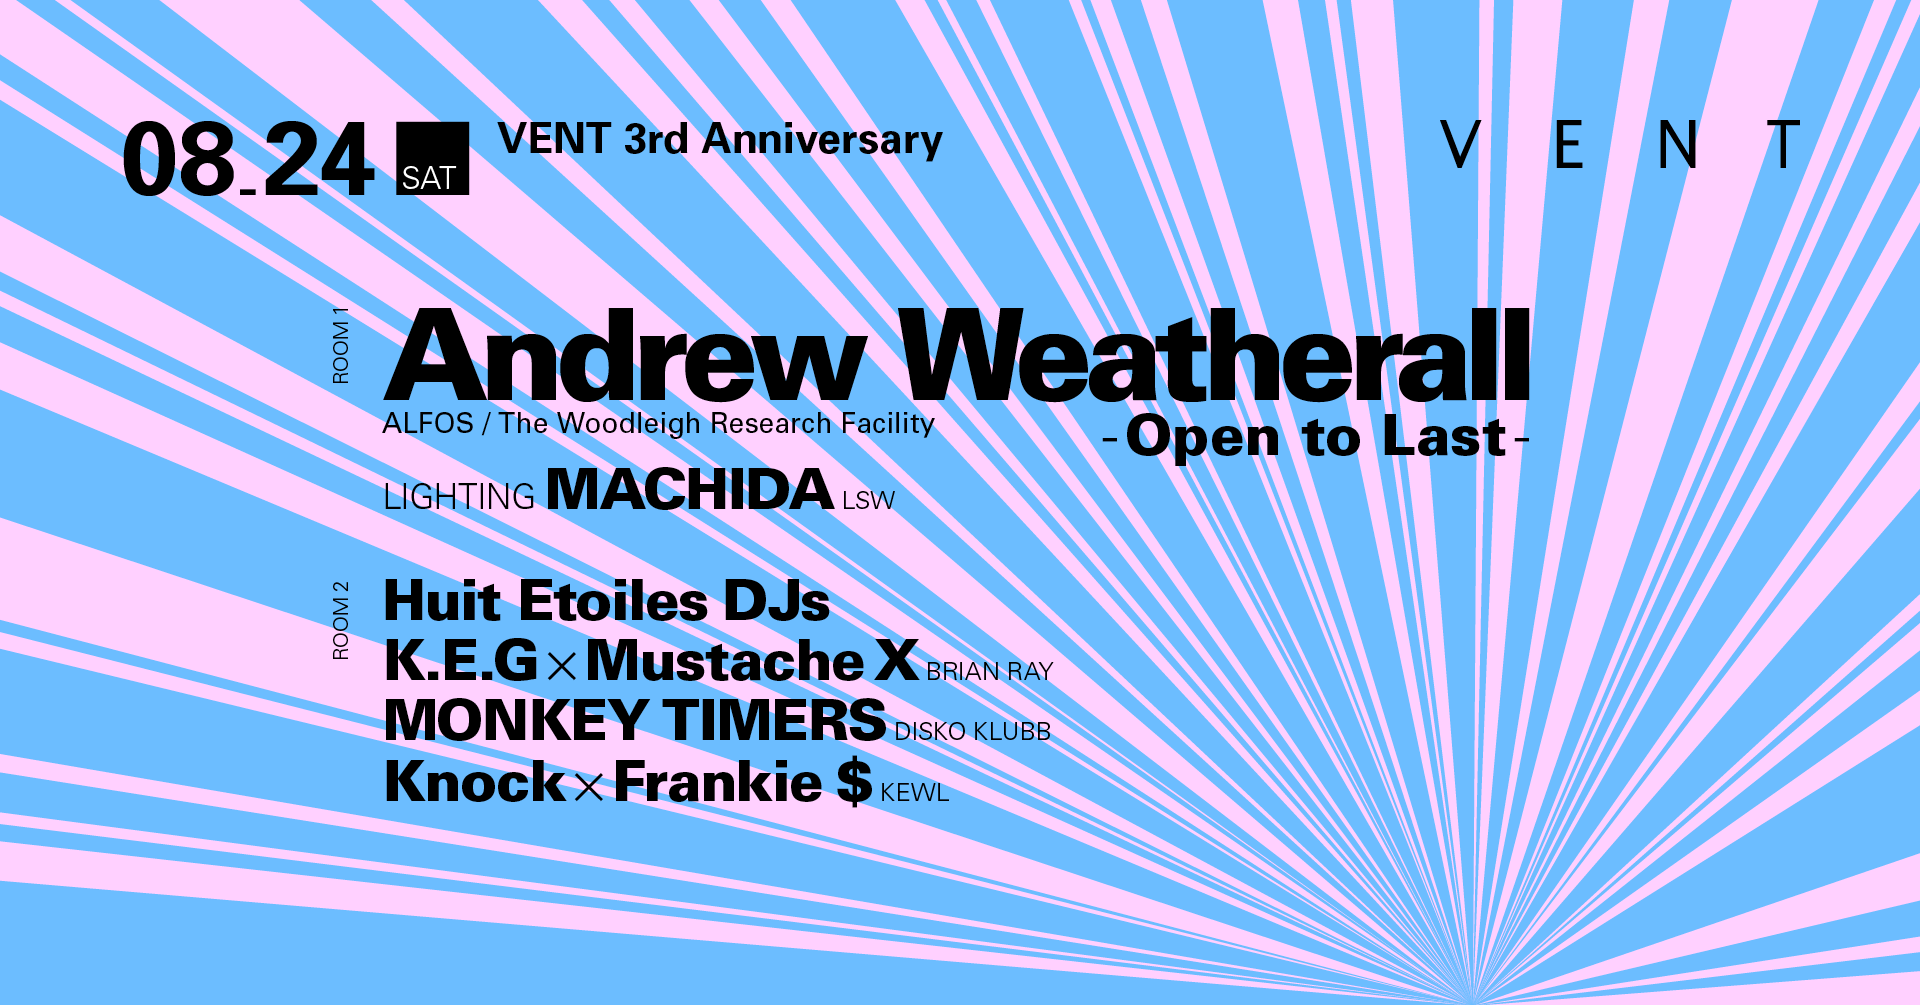 VENT 3rd Anniversary: Day 2 Feat. Andrew Weatherall